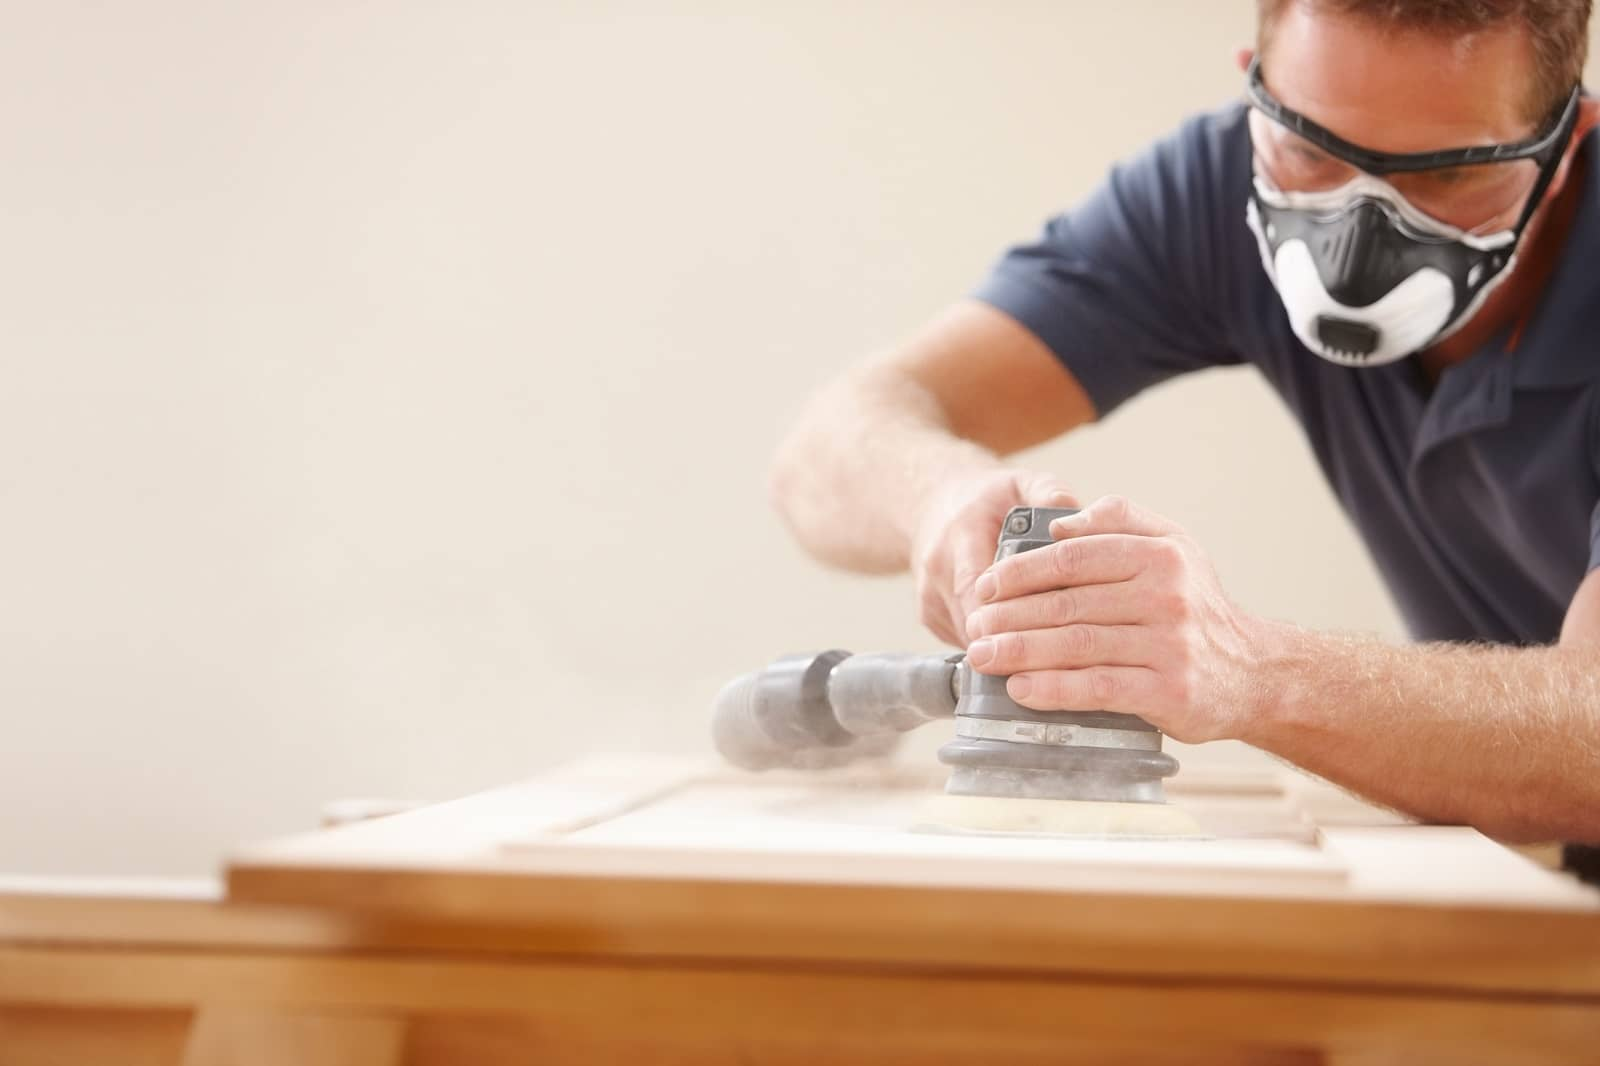 Carpenter using an electric sander